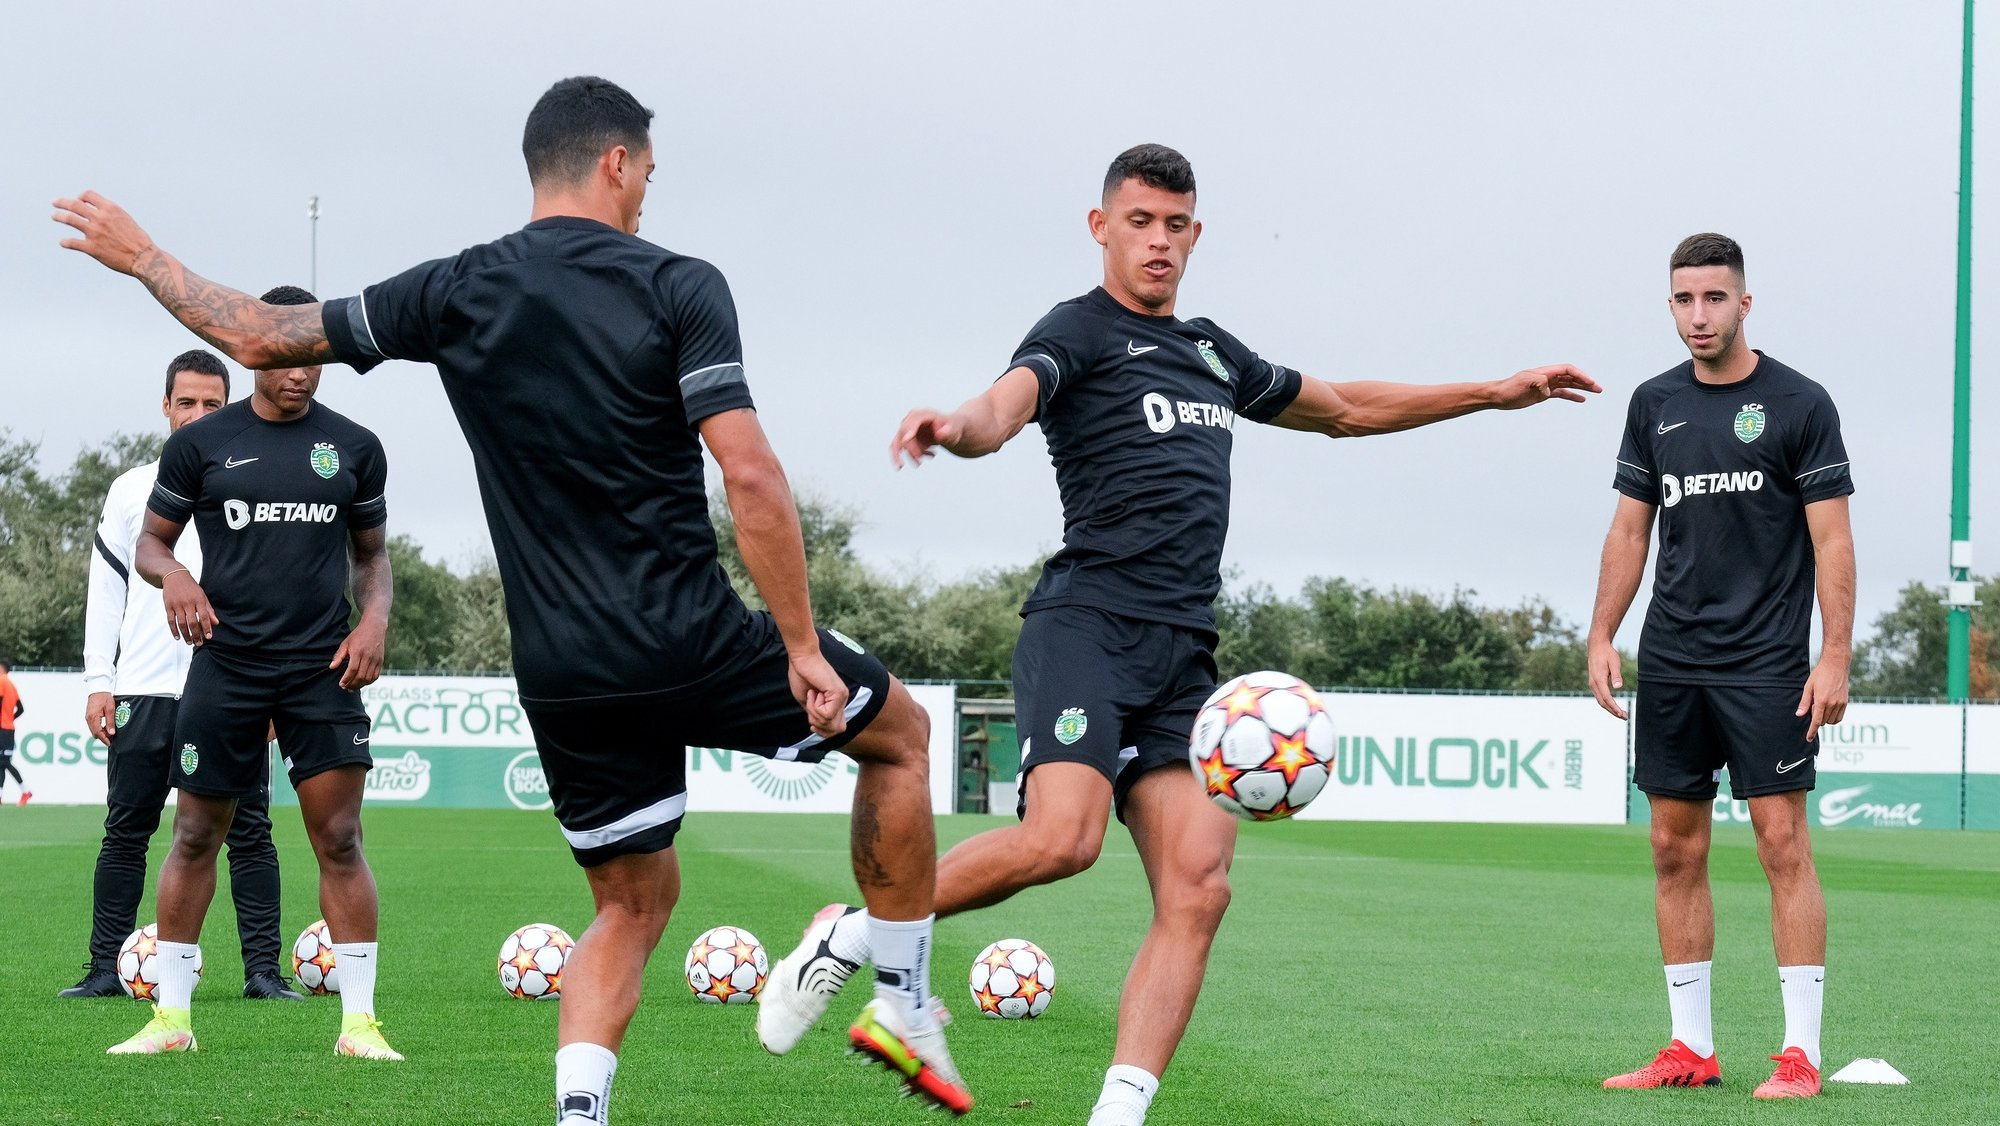 Sporting players Matheus Nunes (2R) and Gonçalo Inacio (R) during a training session in preparation for the upcoming Champions League soccer match with Ajax, Alcochete, Portugal, 14th September 2021. RUI MINDERICO/LUSA